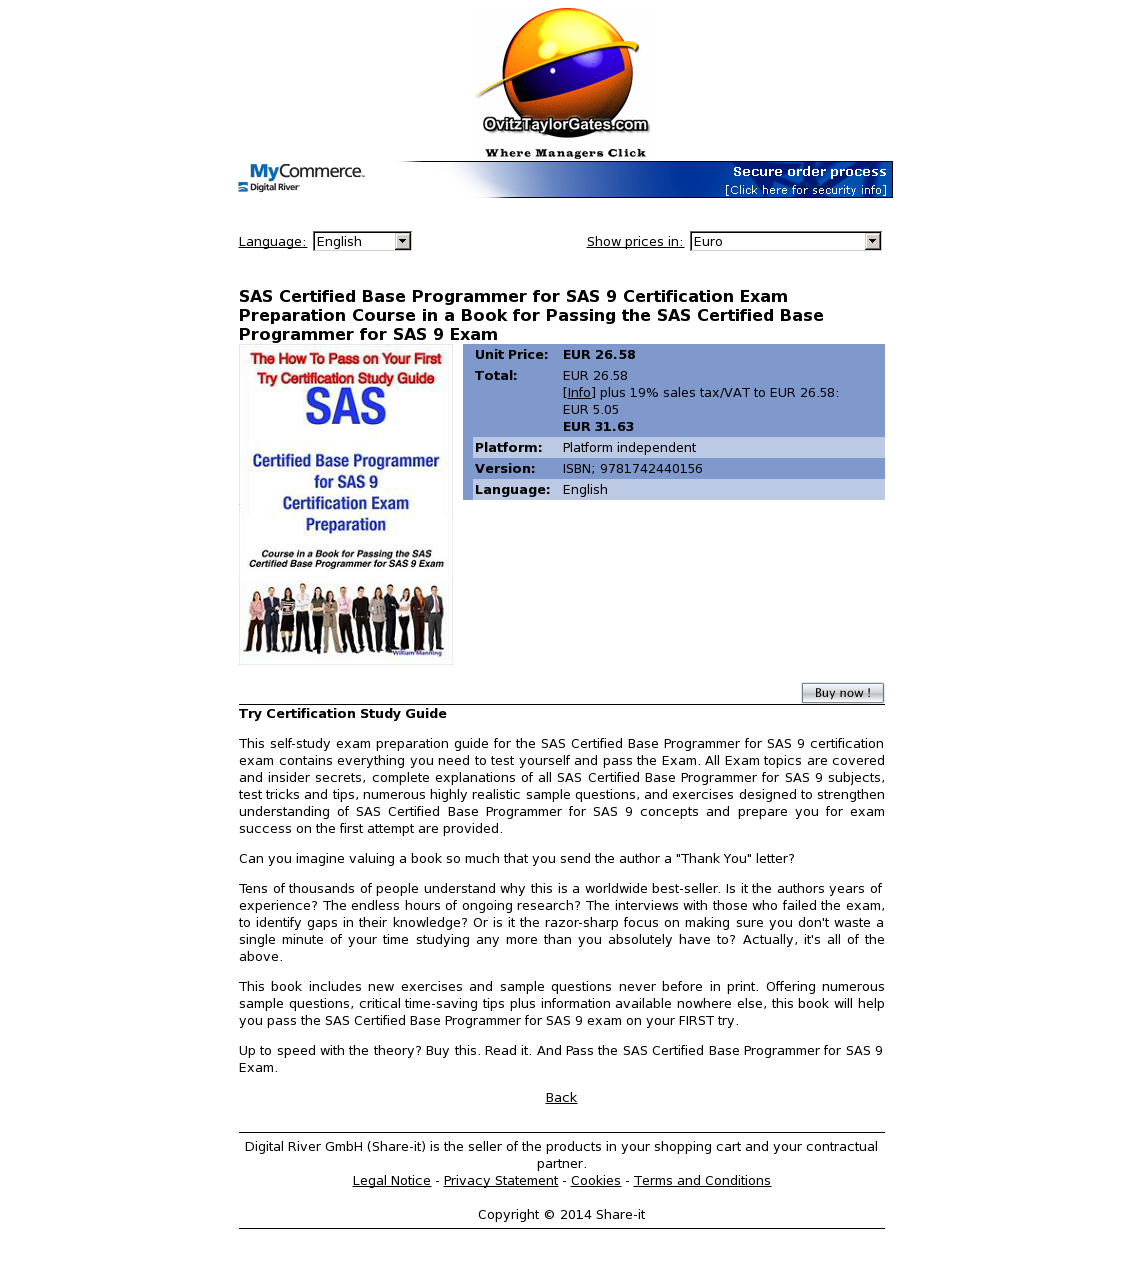 SAS Certified Base Programmer for SAS 9 Certification Exam Preparation Course in a Book for Passing the SAS Certified Base Programmer for SAS 9 Exam